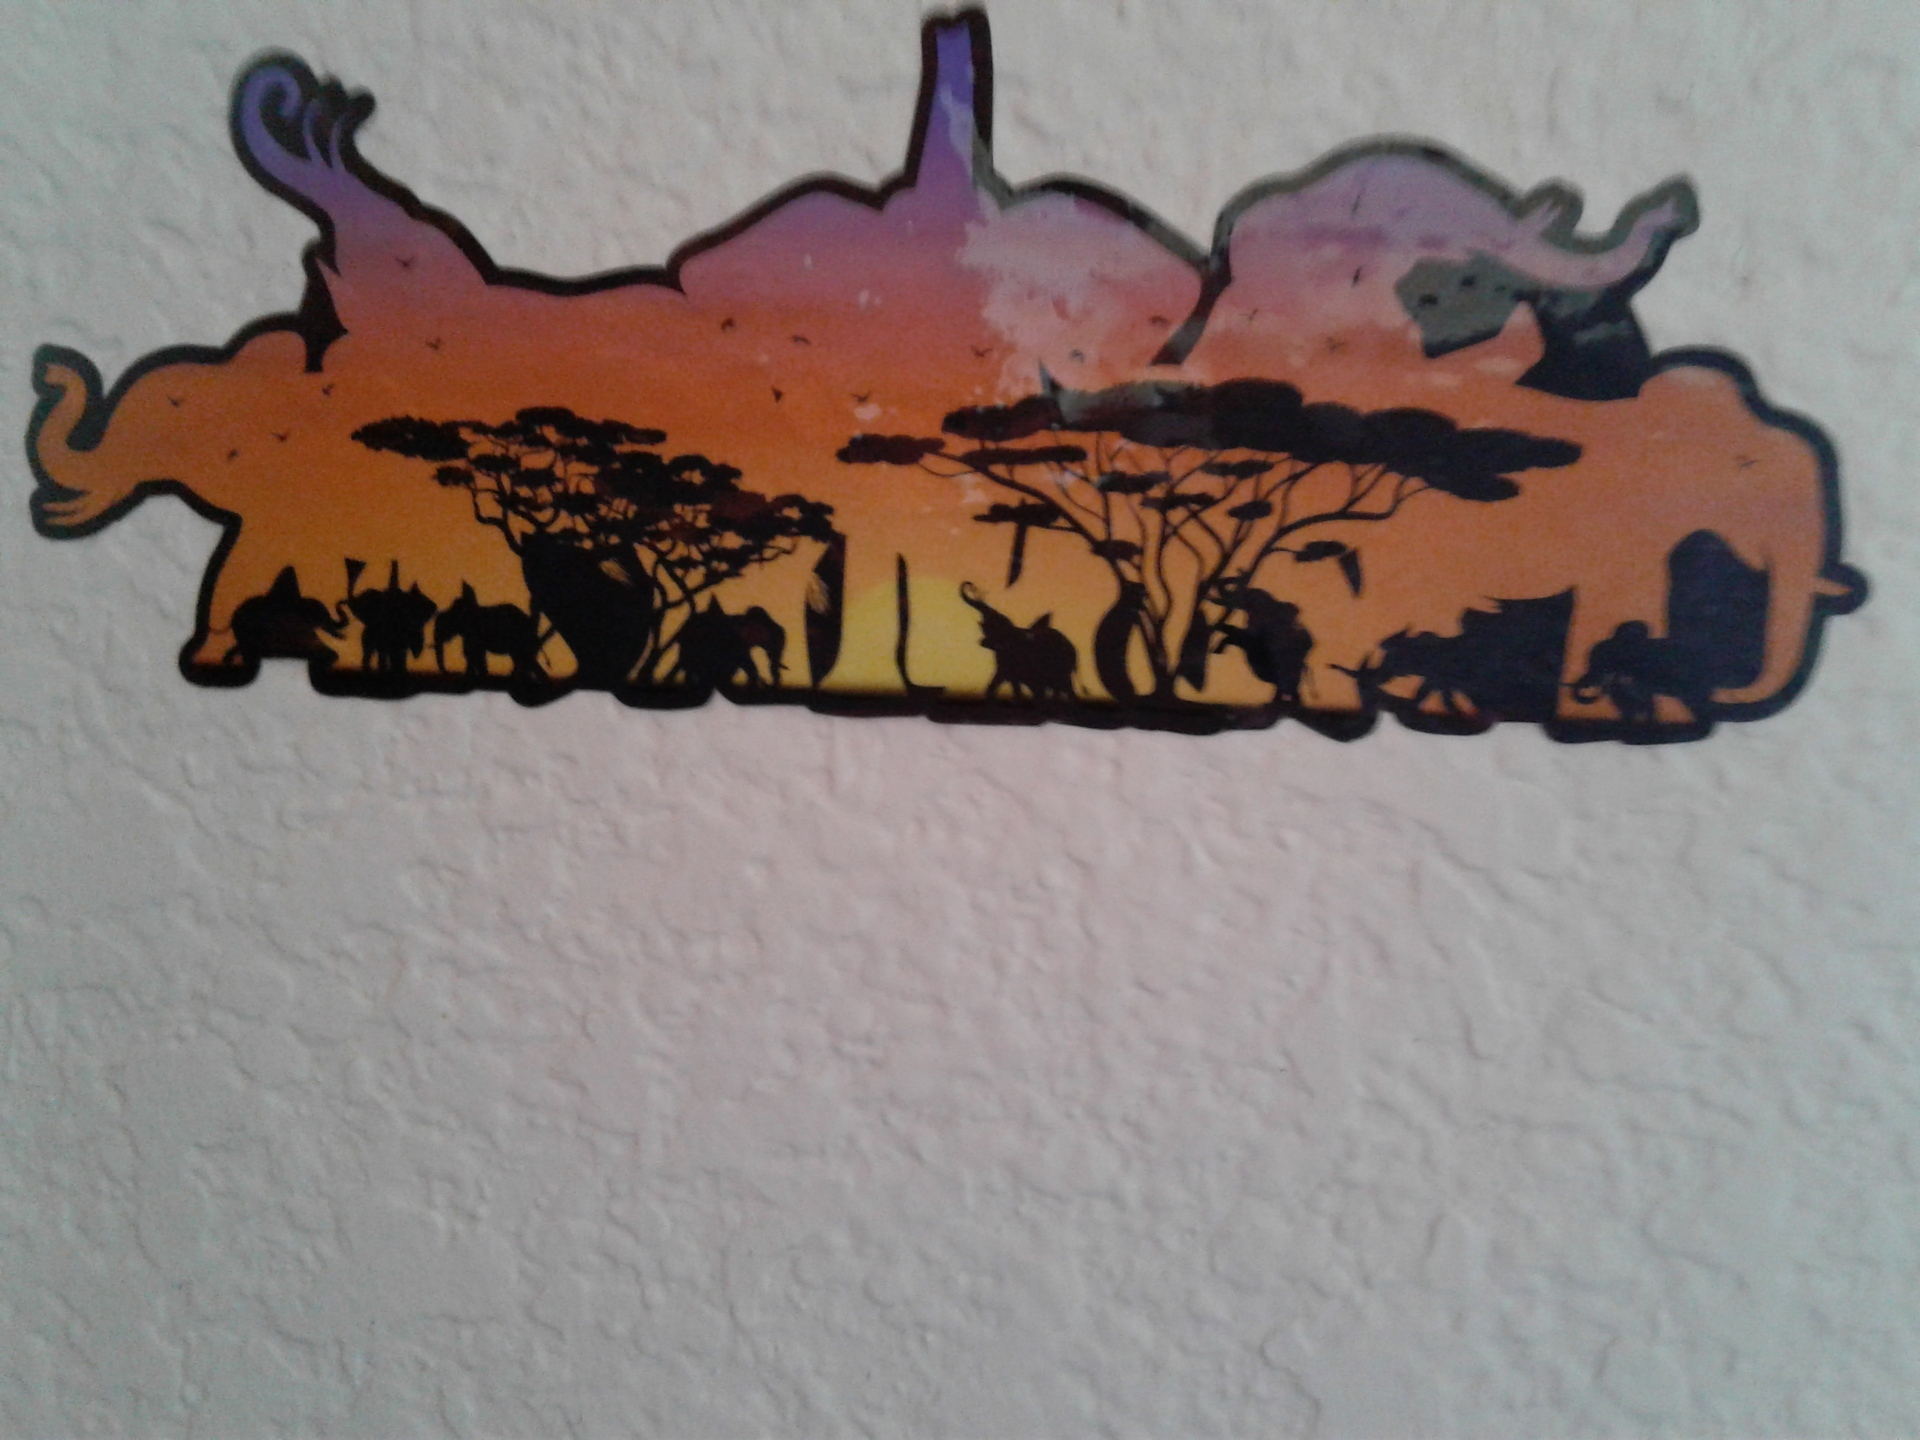 Barbara's photograph of their Double Exposure Elephants and Desert Landscape Sticker